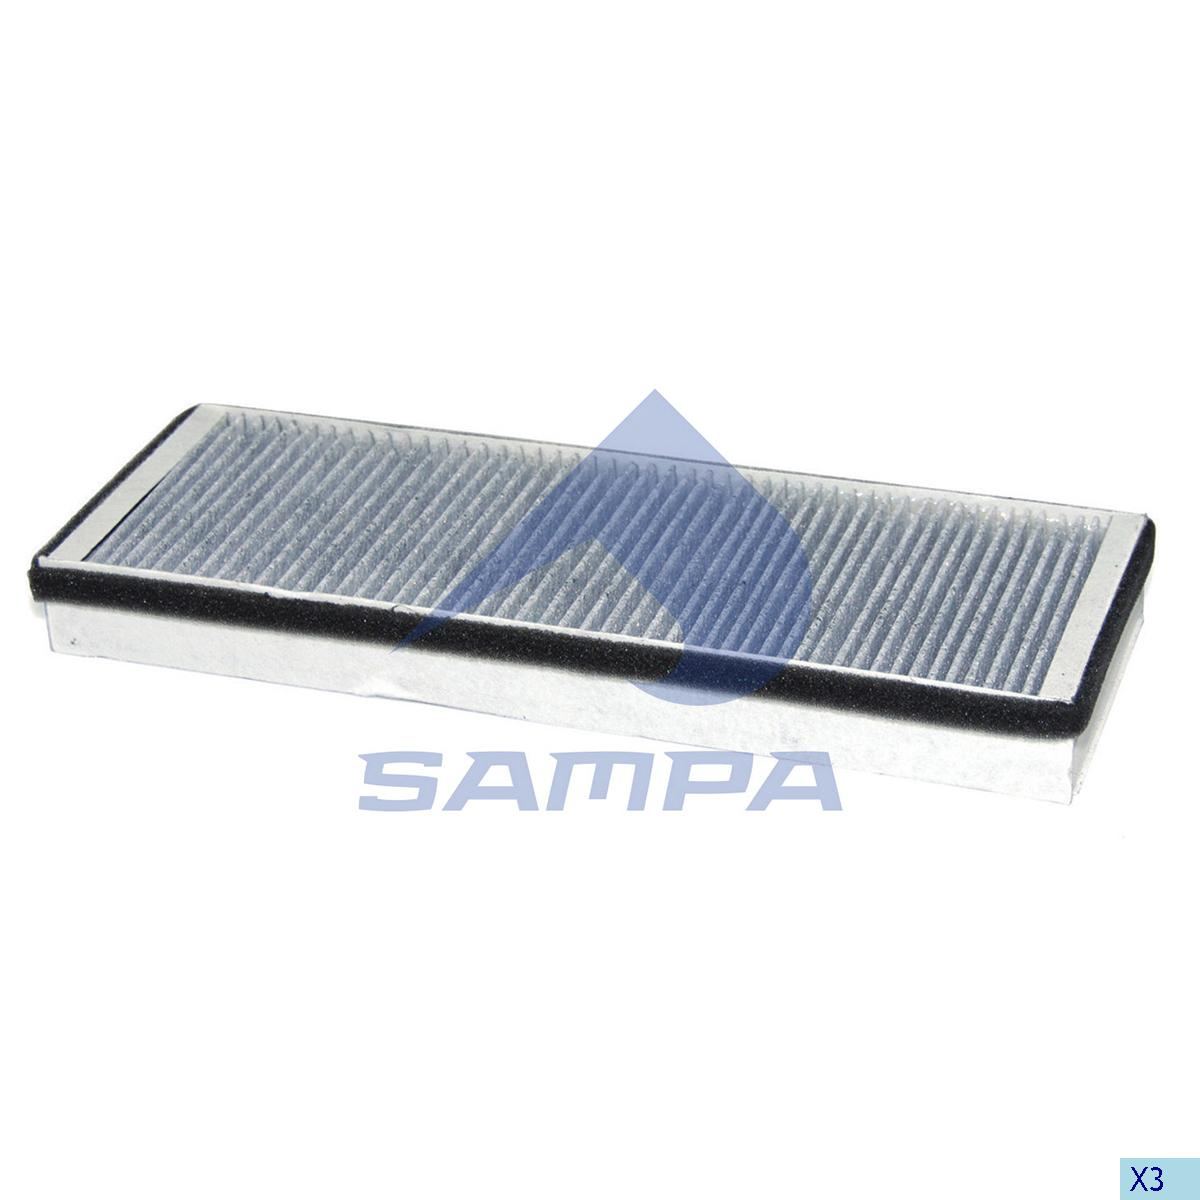 Filter, Cab Heating & Ventilation, Mercedes, Cab